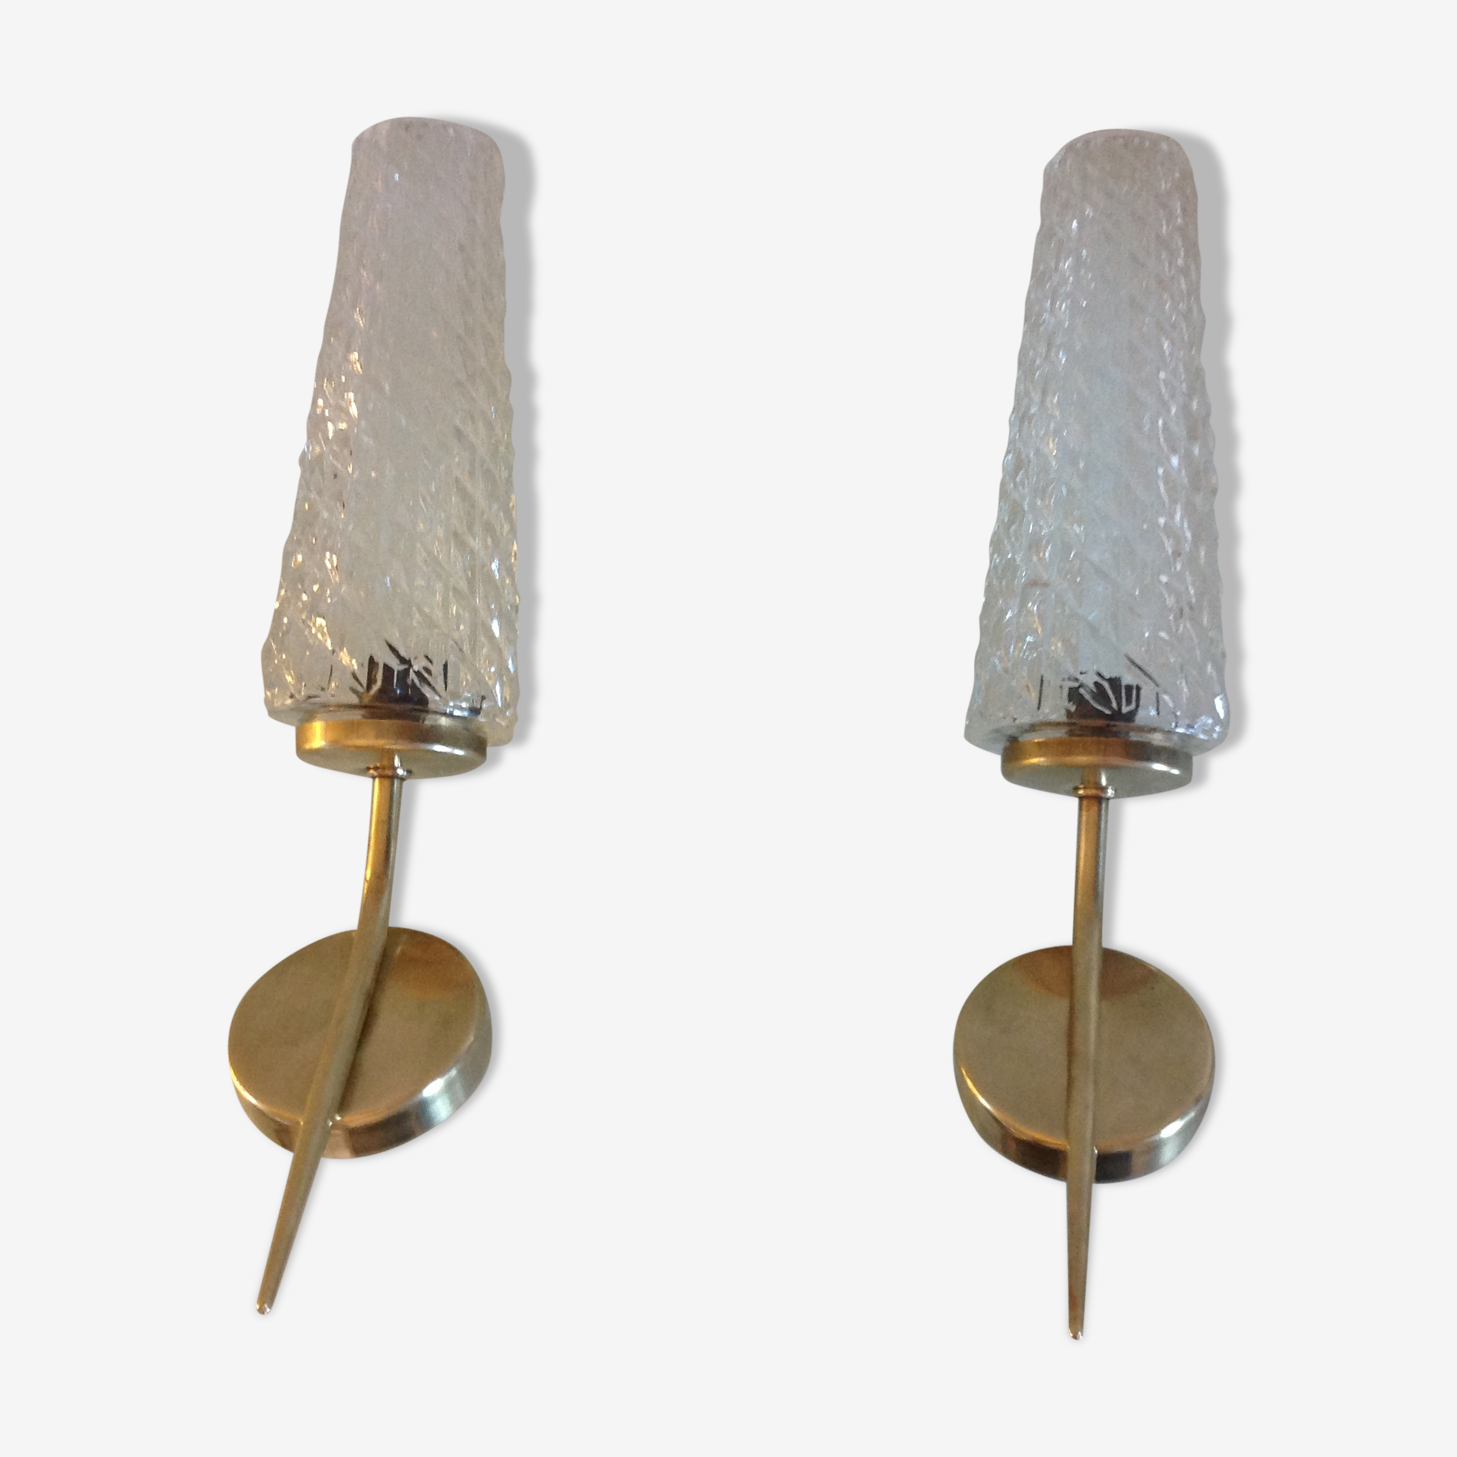 Pair of brass wall lamps conical glasses from the 60's